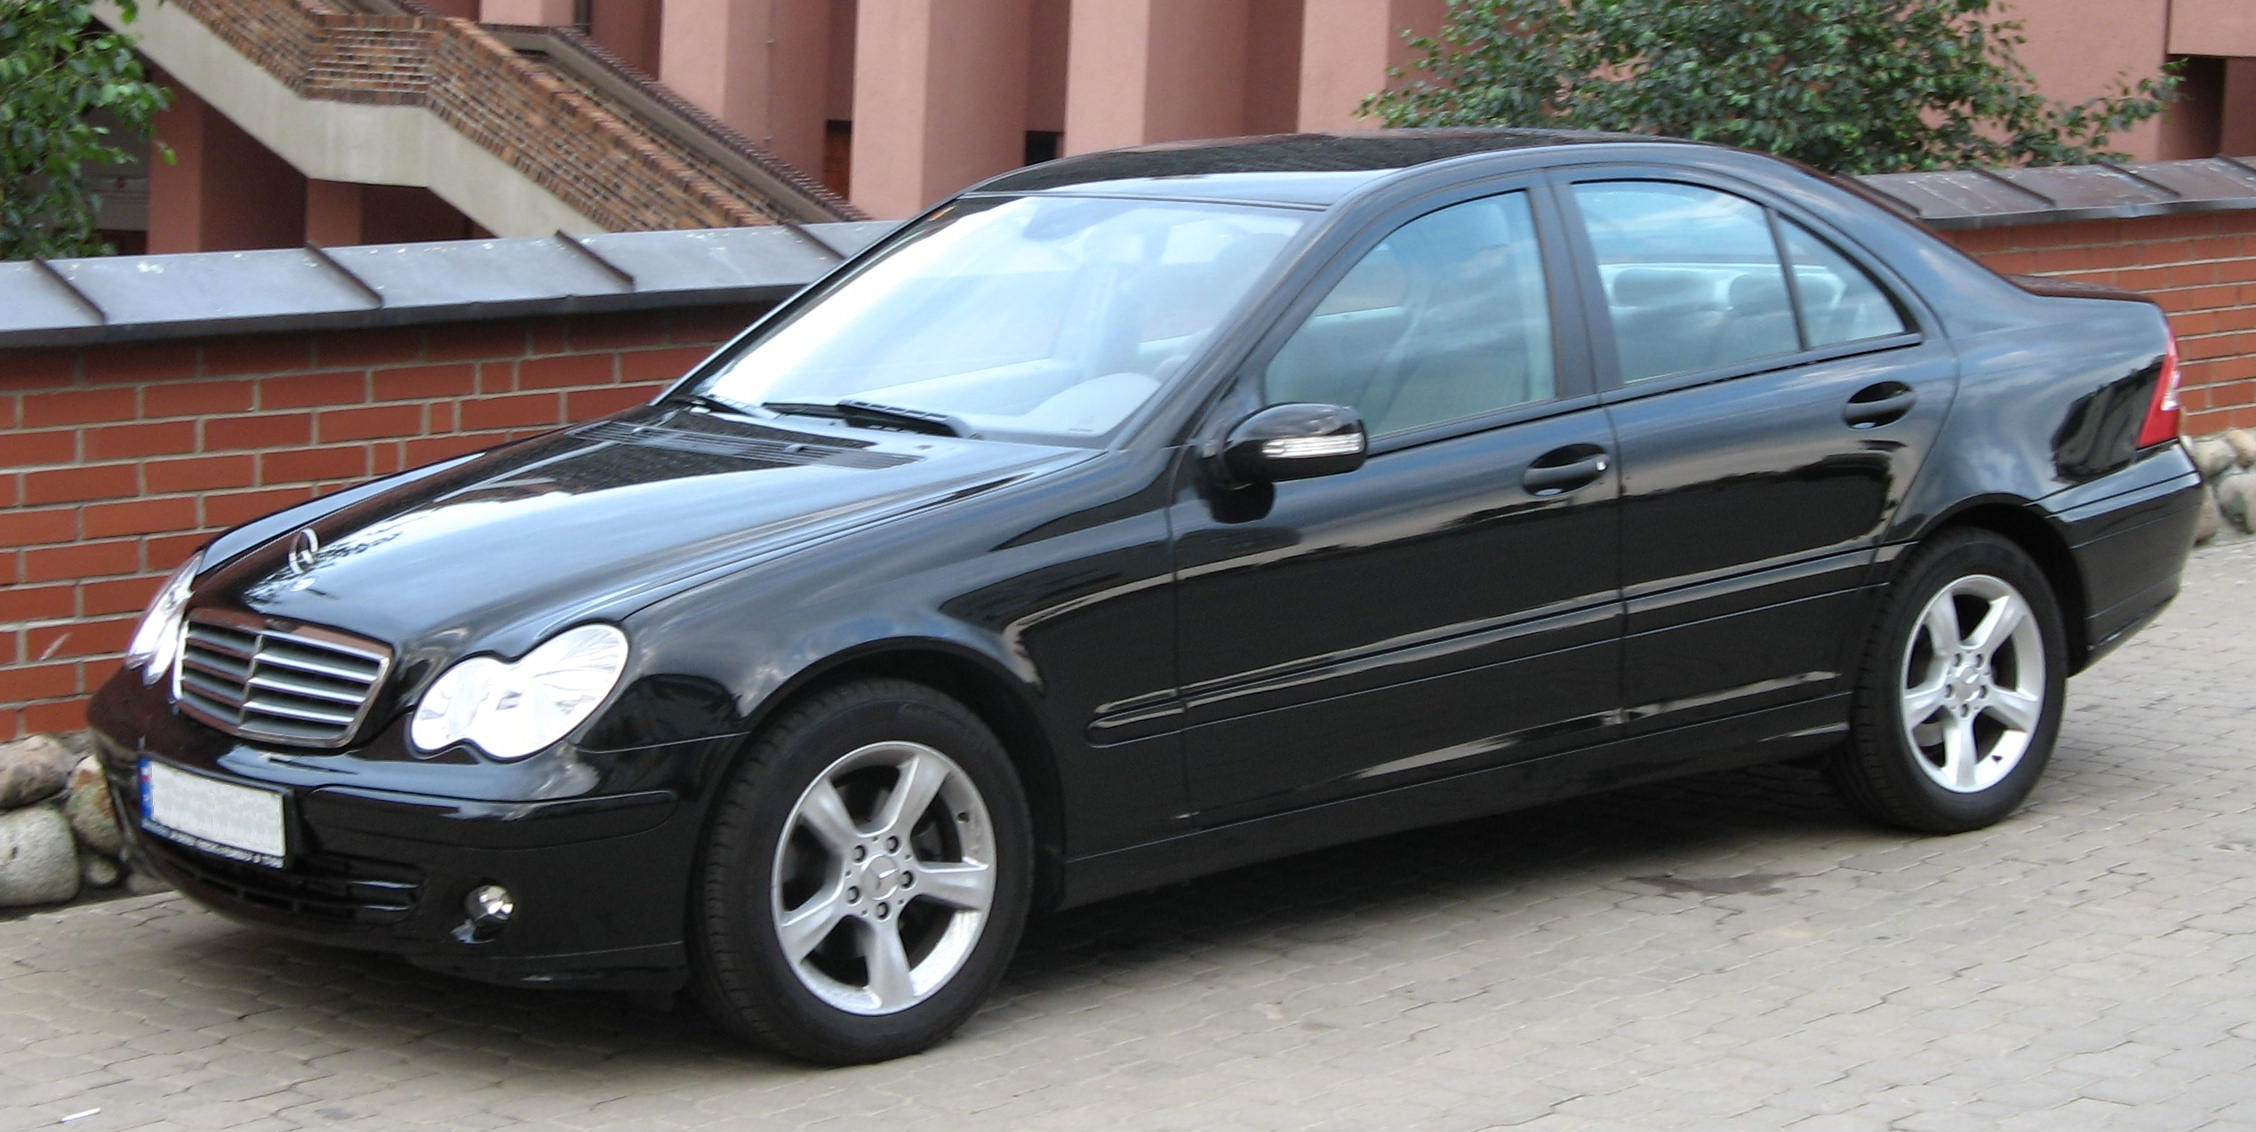 Mercedes Benz Kompressor 2003 Review Amazing Pictures And Images